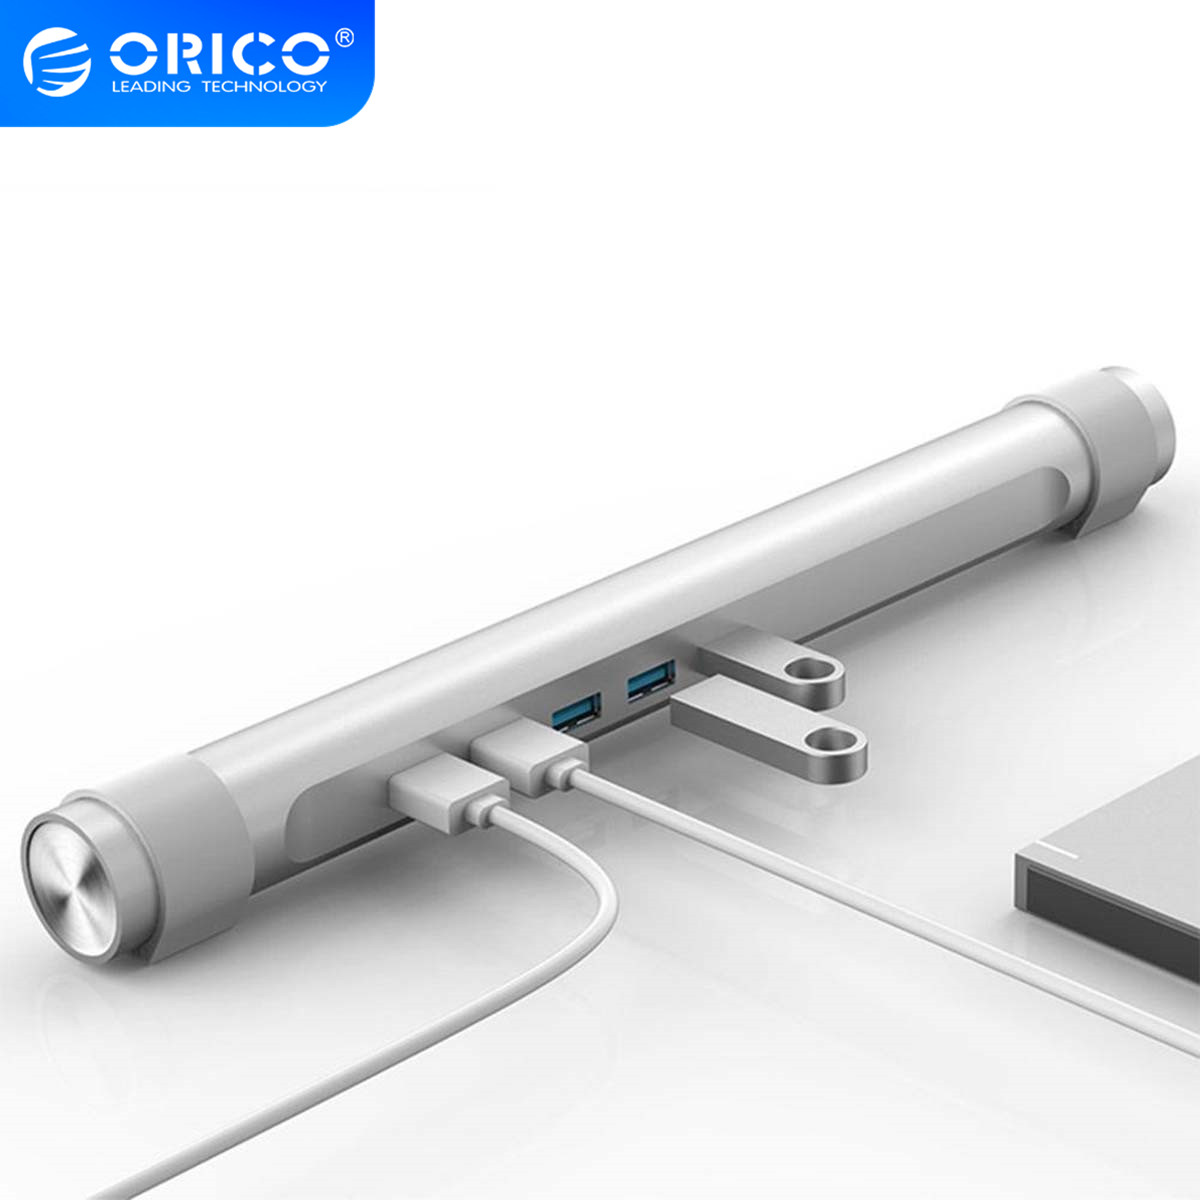 ORICO <font><b>4</b></font> <font><b>port</b></font> USB3.0 <font><b>HUB</b></font> with Laptop Holder Stand Function ABS Round <font><b>HUB</b></font> for Apple Laptop MAC Perfectly Silver <font><b>USB</b></font> Splitter image